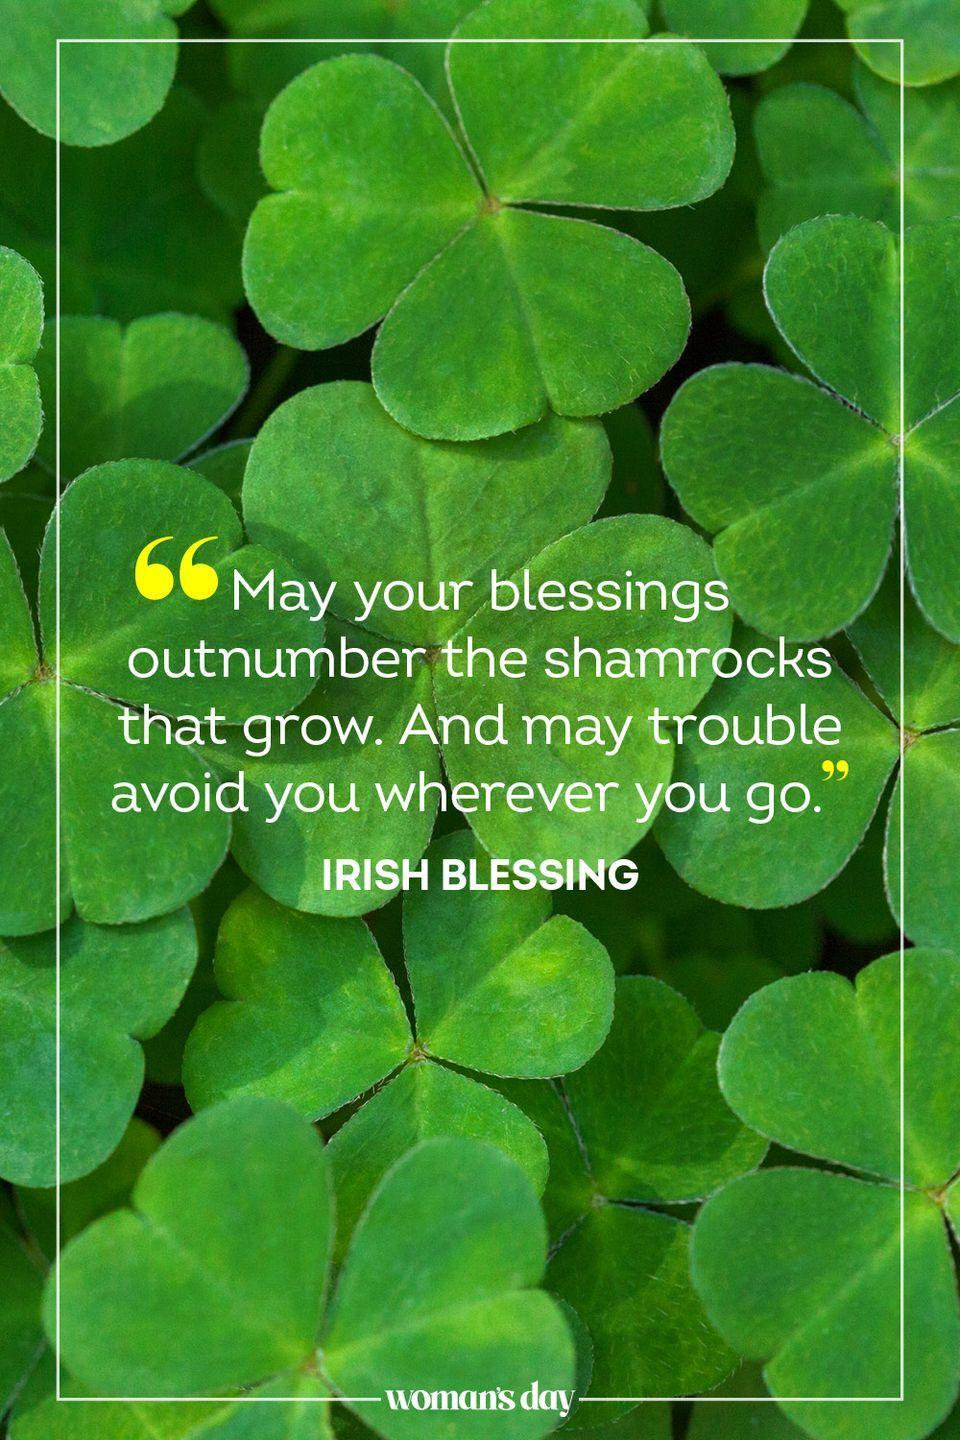 """<p>""""May your blessings outnumber the shamrocks that grow. And may trouble avoid you wherever you go."""" — Irish Blessing</p><p><strong>RELATED:</strong> <a href=""""https://www.womansday.com/life/entertainment/g35169831/st-patricks-day-memes/"""" rel=""""nofollow noopener"""" target=""""_blank"""" data-ylk=""""slk:17 St. Patrick's Day Memes That Will &quot;Craic&quot; You Up"""" class=""""link rapid-noclick-resp"""">17 St. Patrick's Day Memes That Will """"Craic"""" You Up</a></p>"""